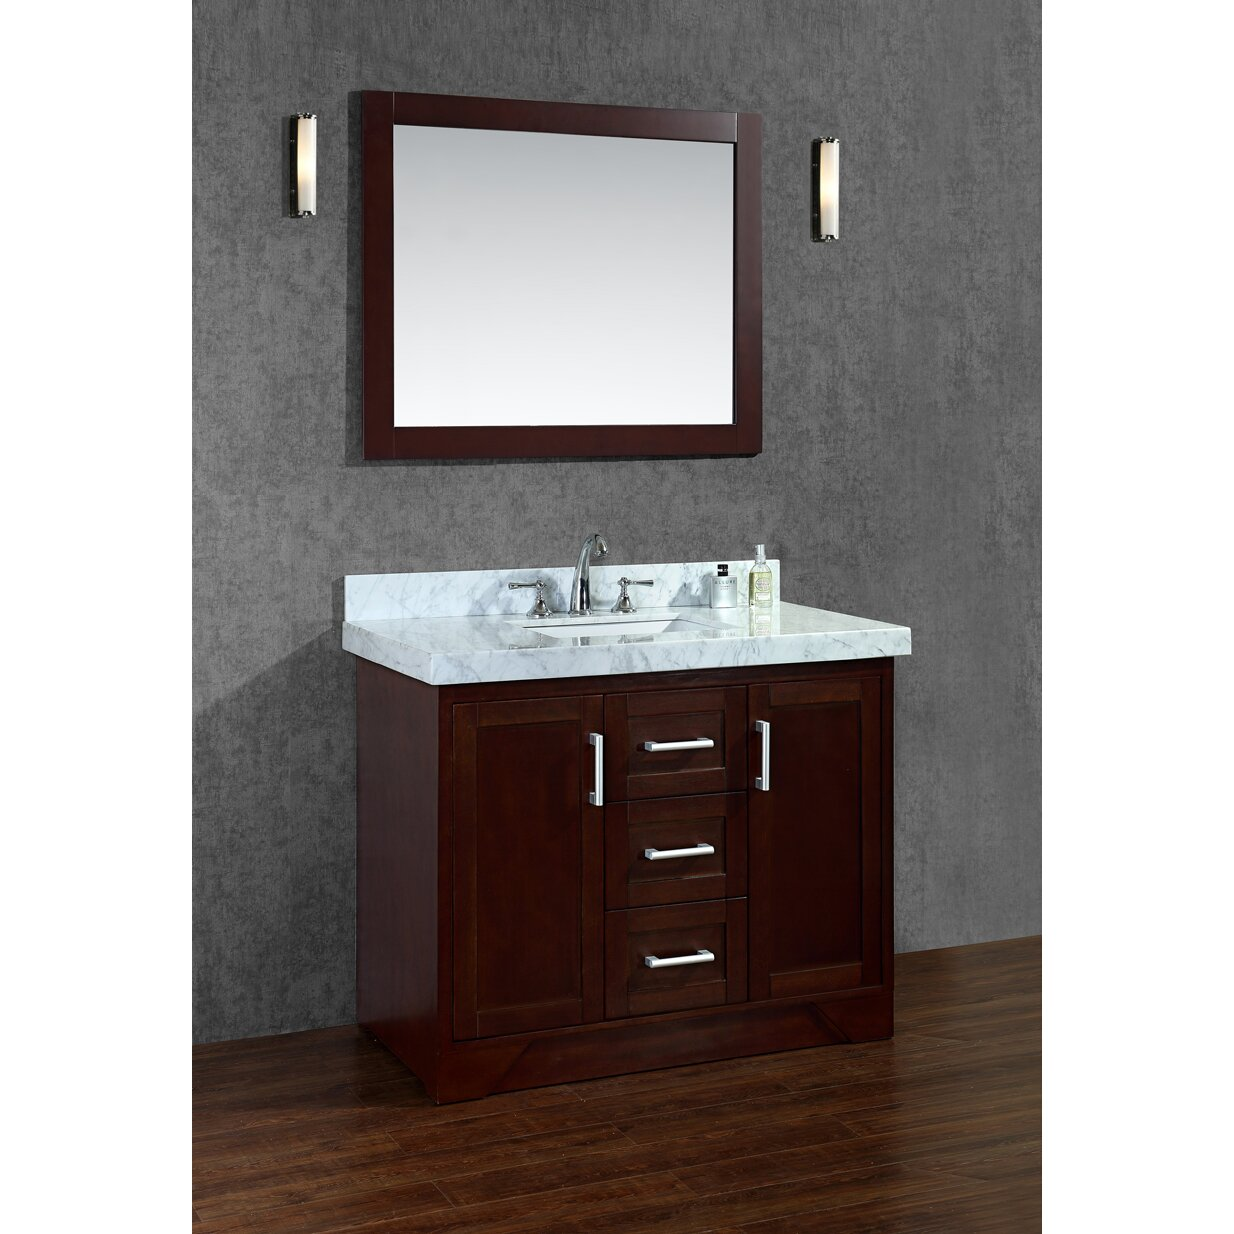 Ariel Bath Ashbury 42 Single Bathroom Vanity Set With Mirror Reviews Wayfair